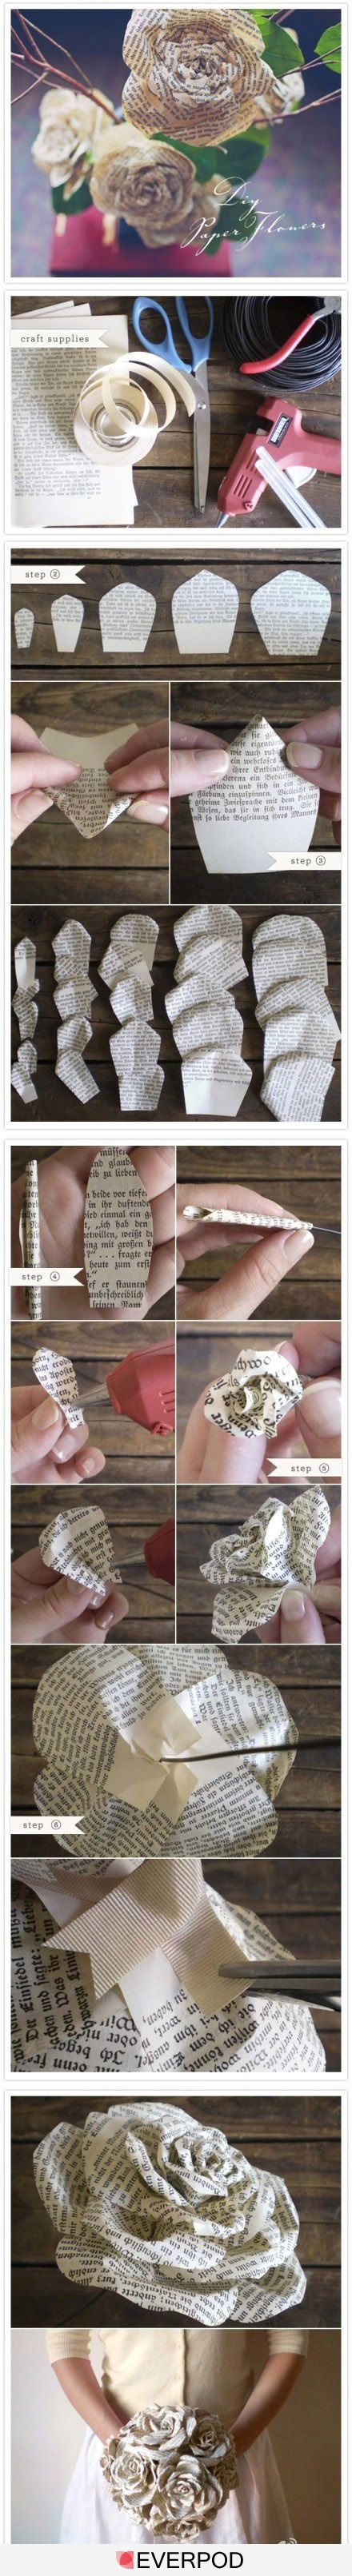 Love flowers made from book pages, but this looks like a complicated project that will take a lot of time....maybe in the future though!